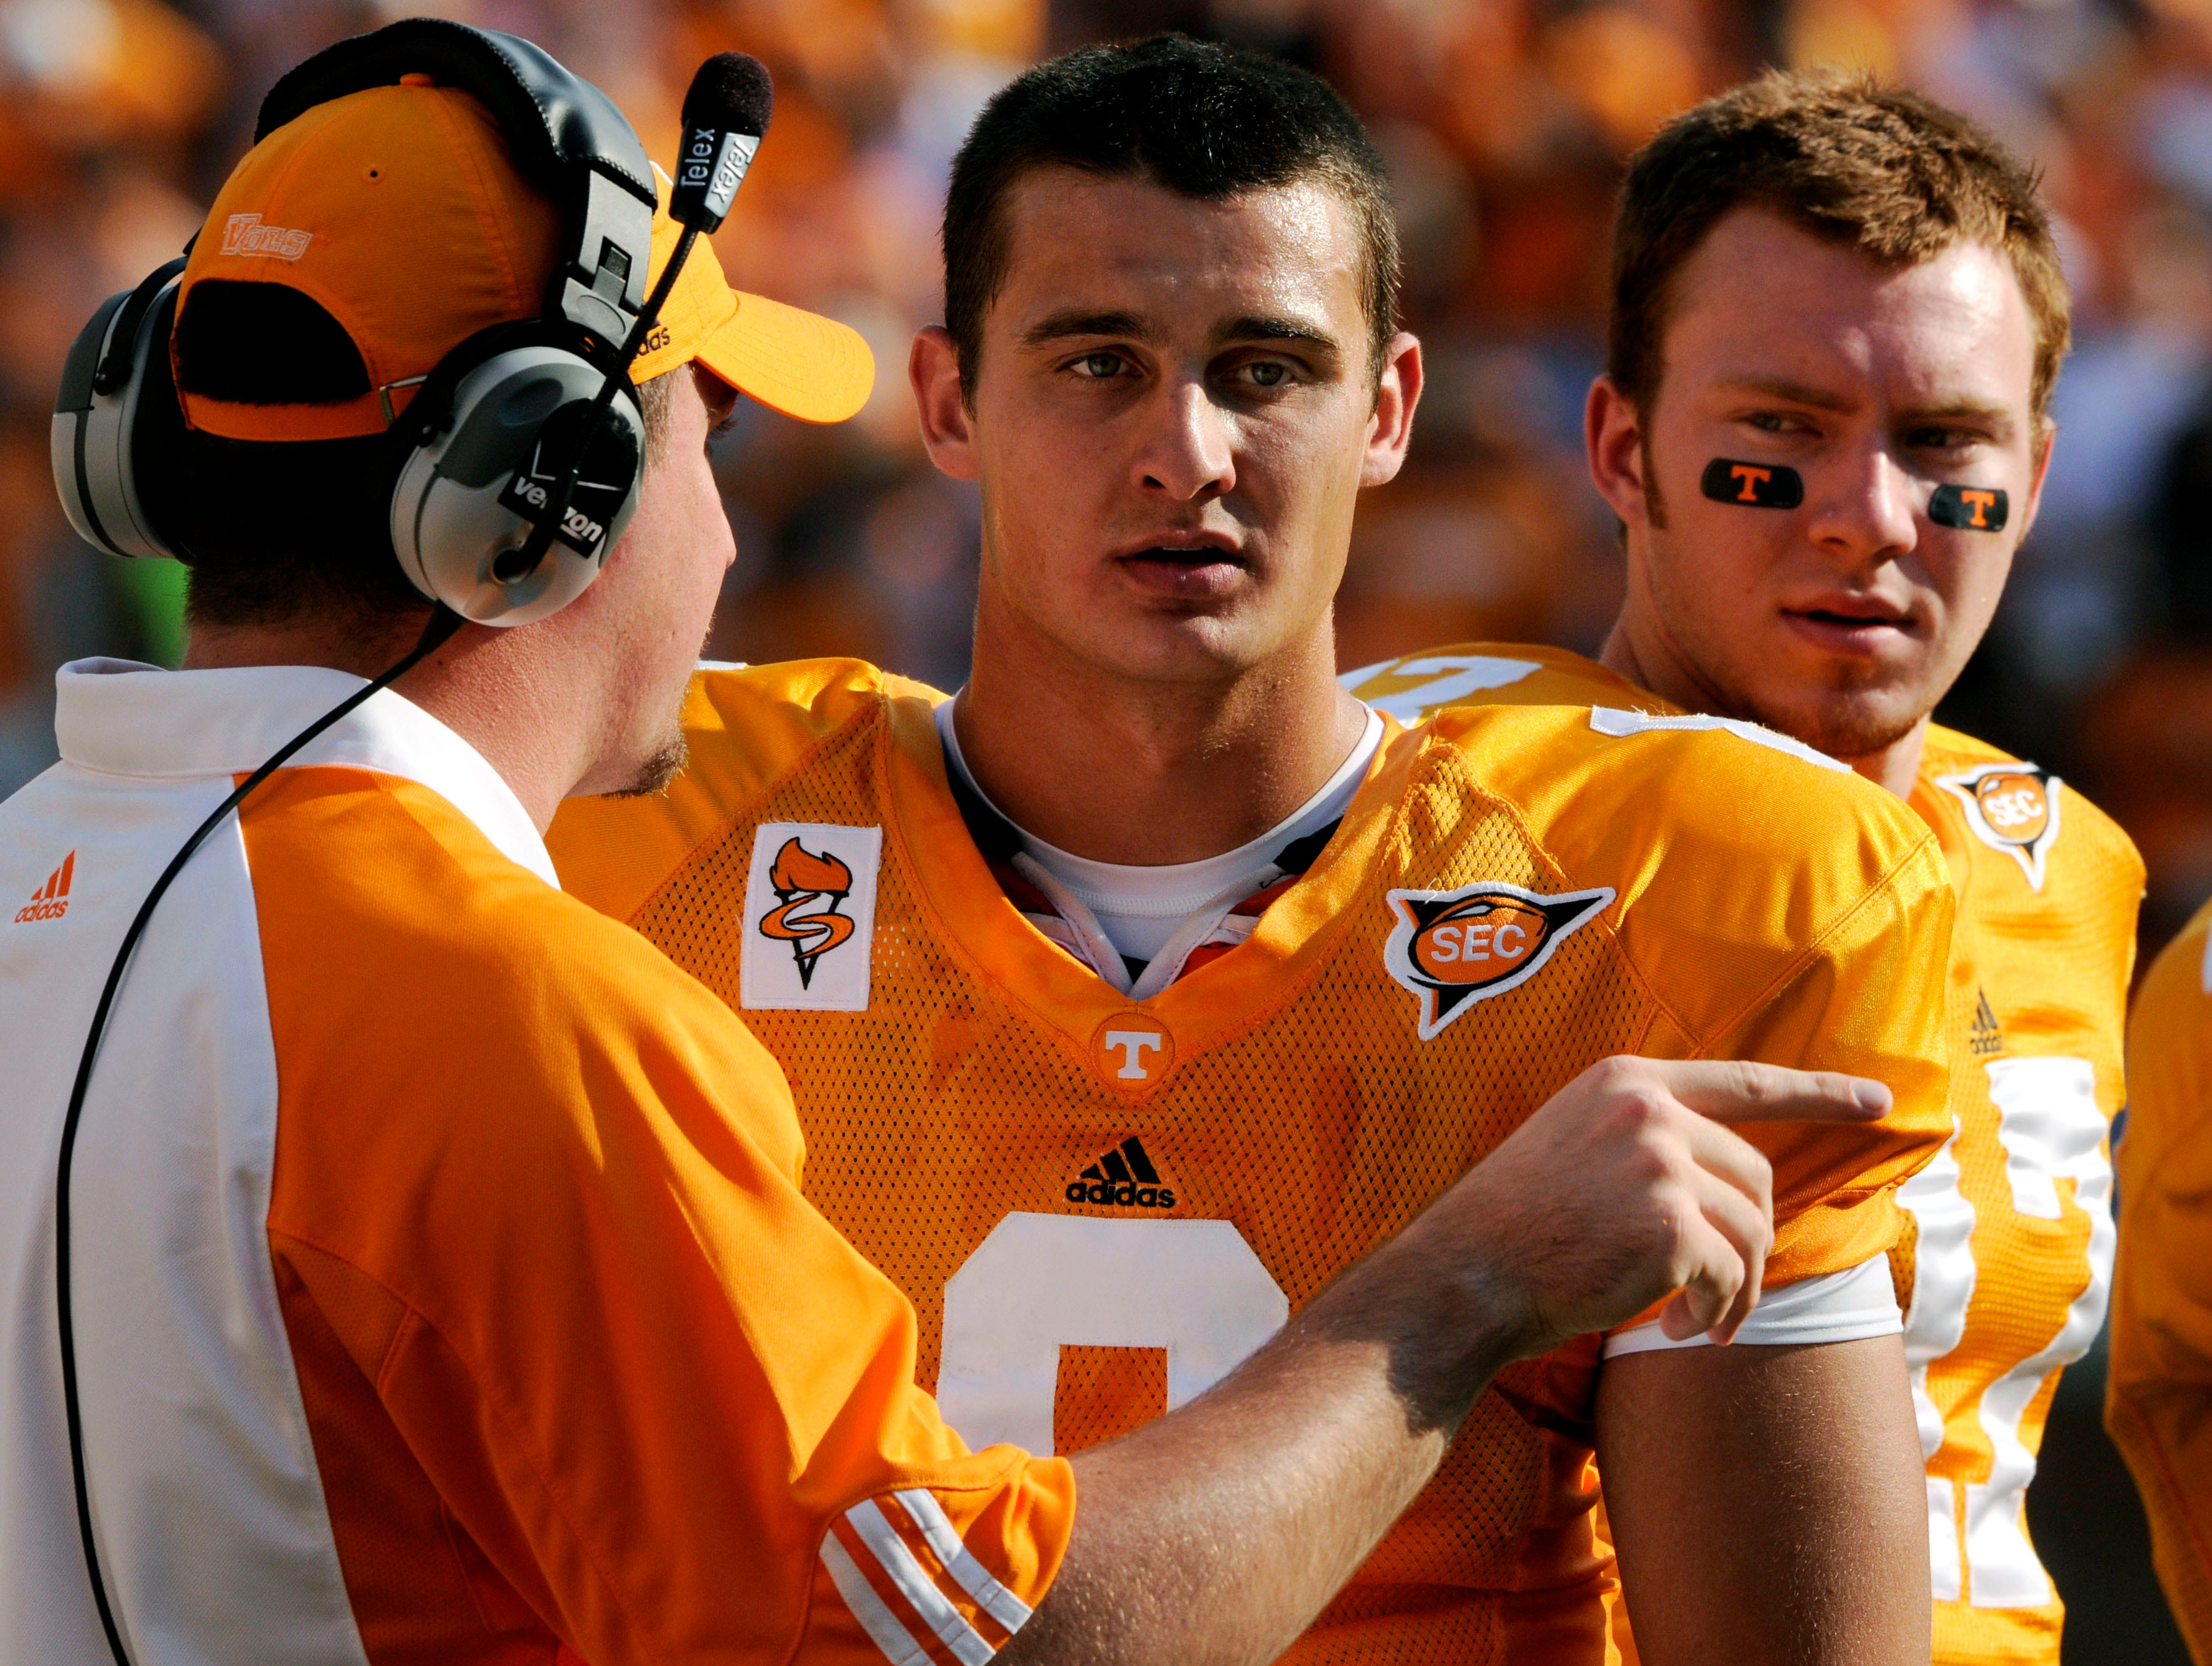 Tennessee quarterback Jonathan Crompton (8) listens to a coach and back-up quarterback Nick Stephens (17) in the background. Tennessee lost 30-6 to arch rival Florida in Neyland Stadium on September 20, 2008.